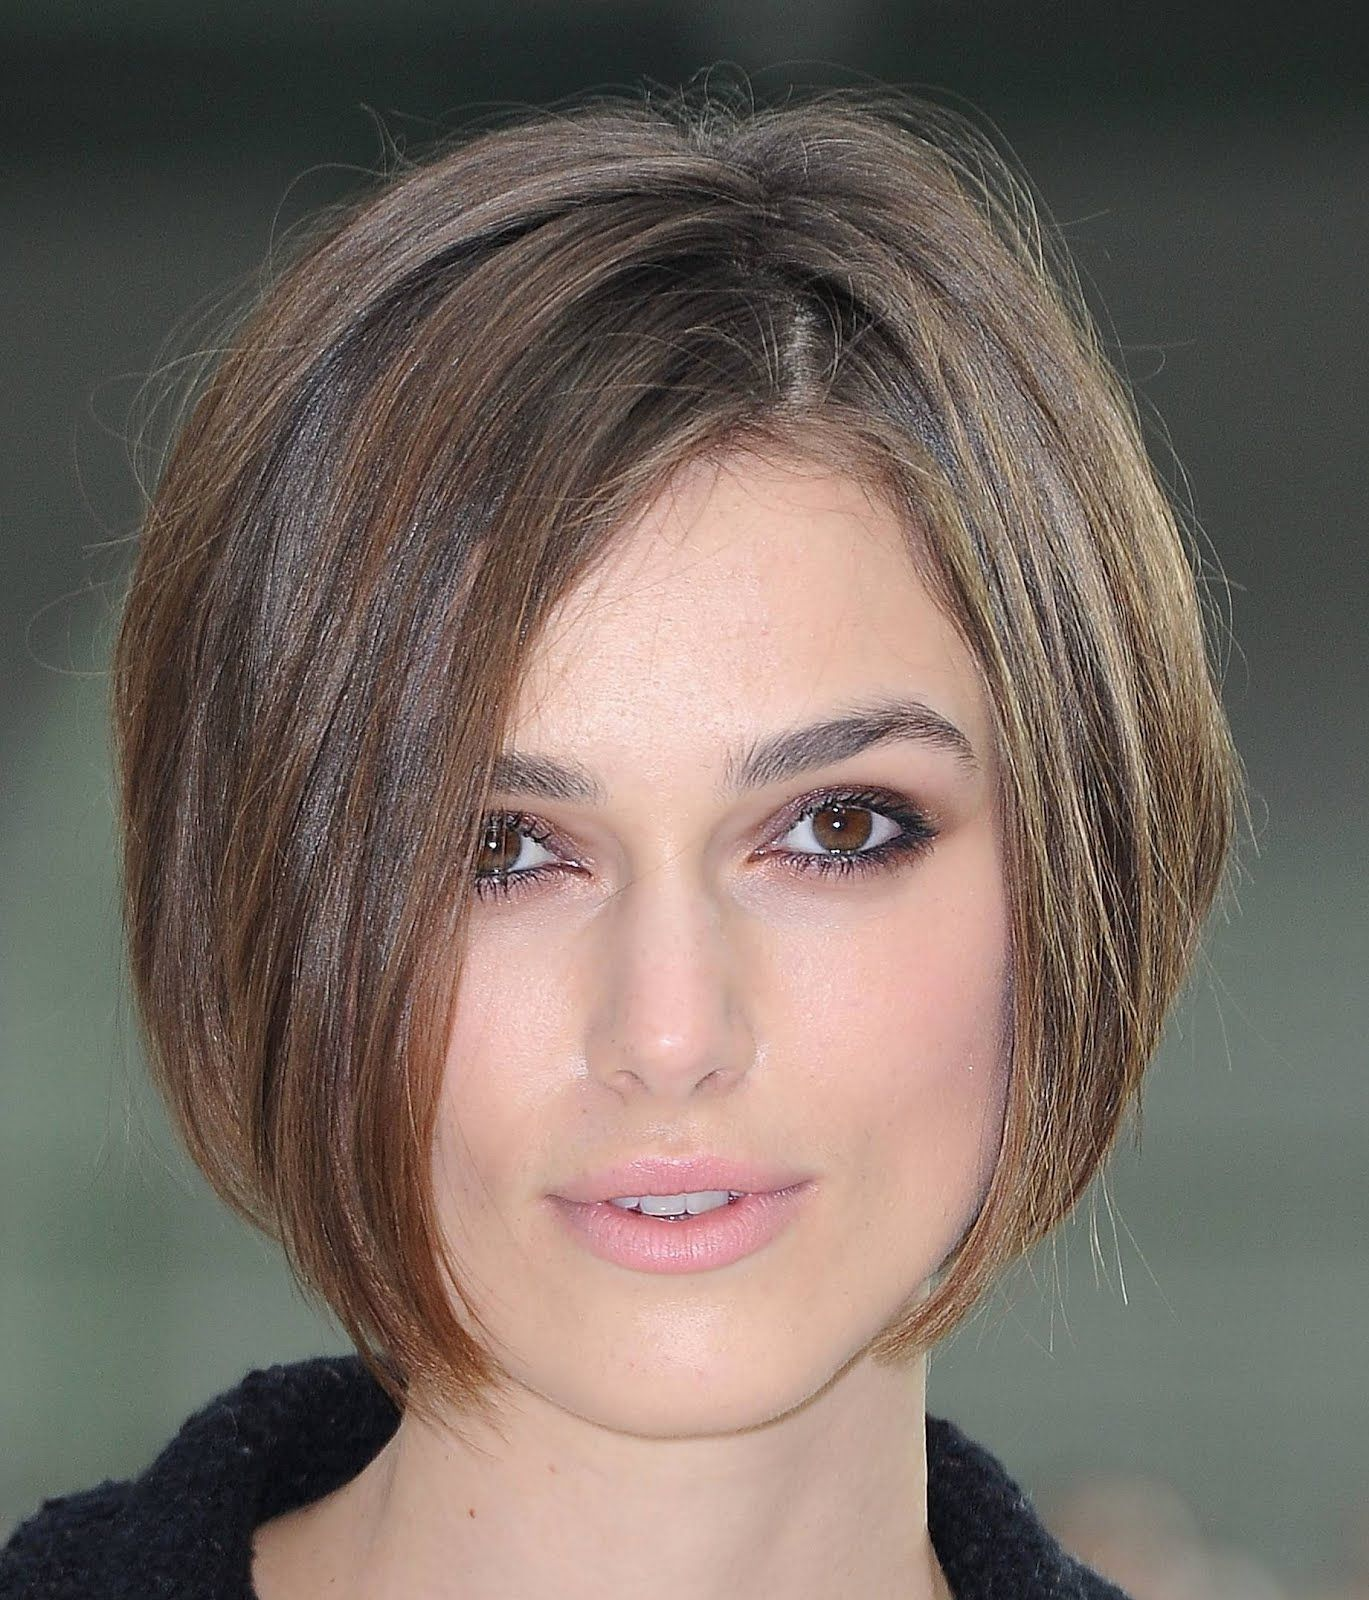 Outstanding 1000 Images About Very Short Hairstyles On Pinterest Very Short Short Hairstyles Gunalazisus